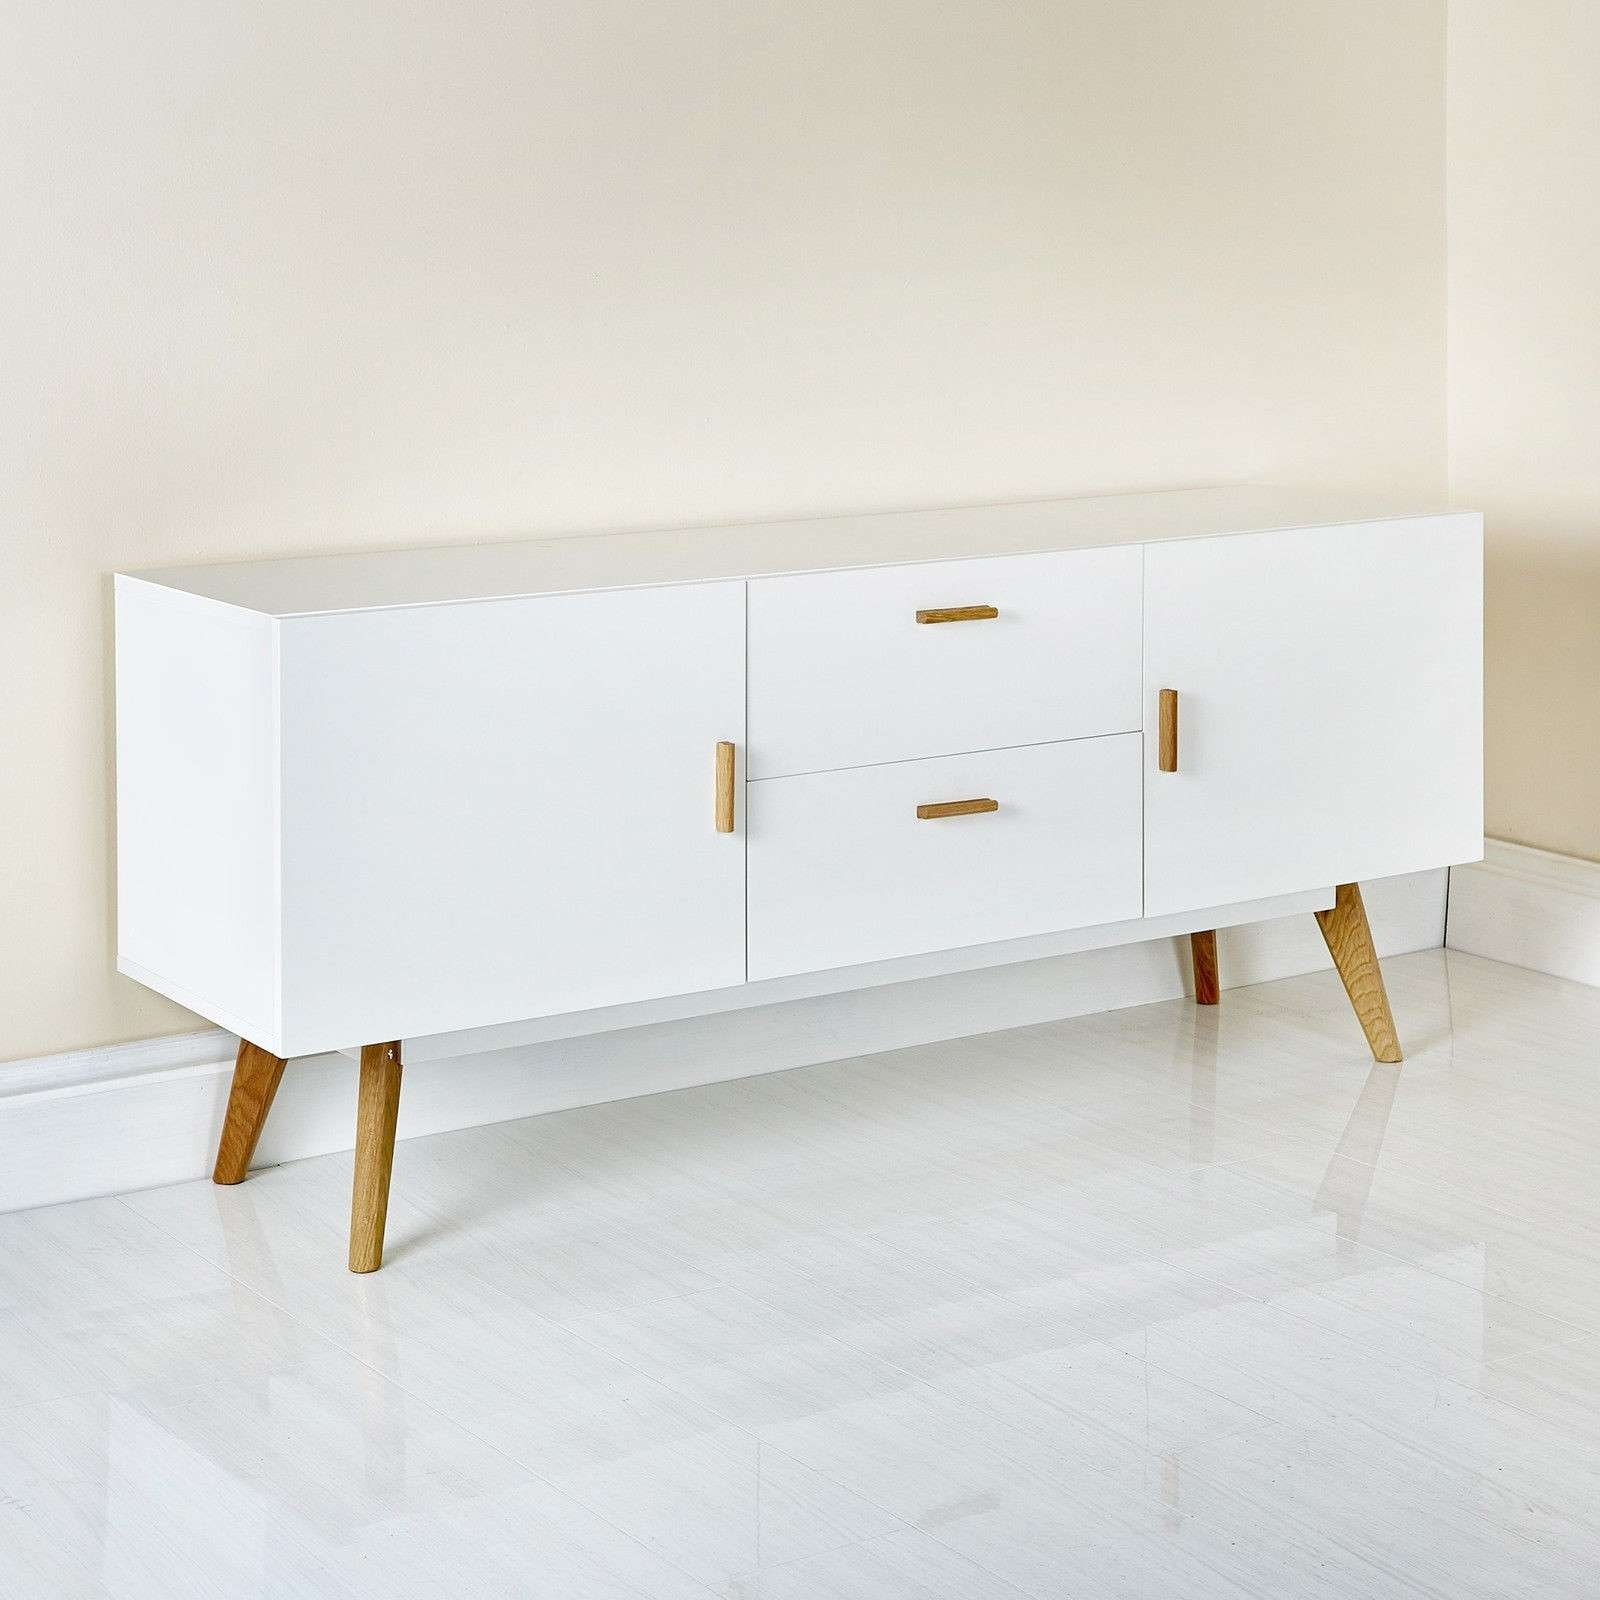 Scandinavian Retro Style White Sideboard Abreo Home Furniture Inside White Modern Sideboards (View 14 of 20)